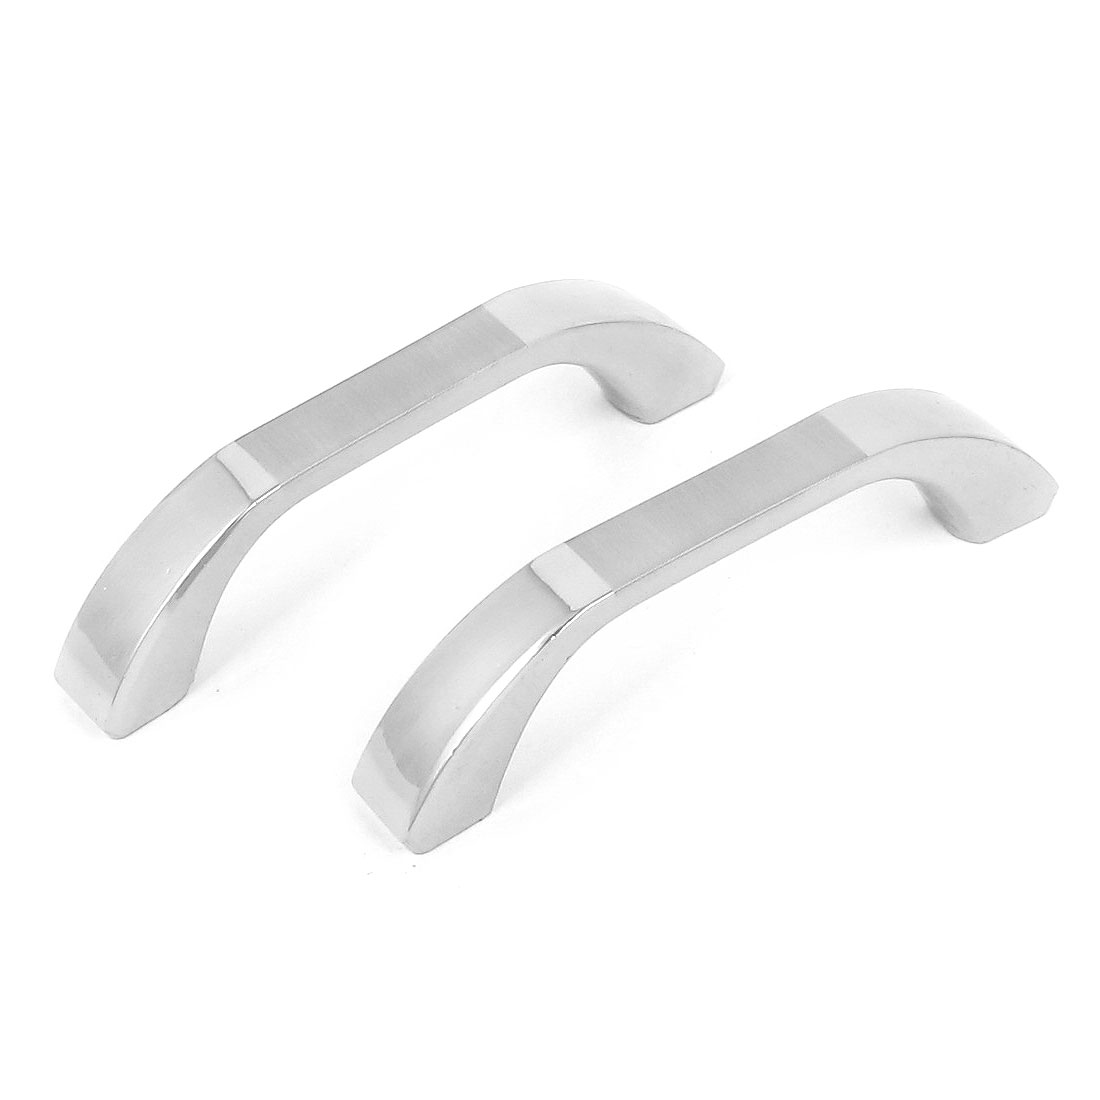 2pcs 75mm Long Zinc Alloy Arch Knob Cabinet Door Pull Handle Silver Tone